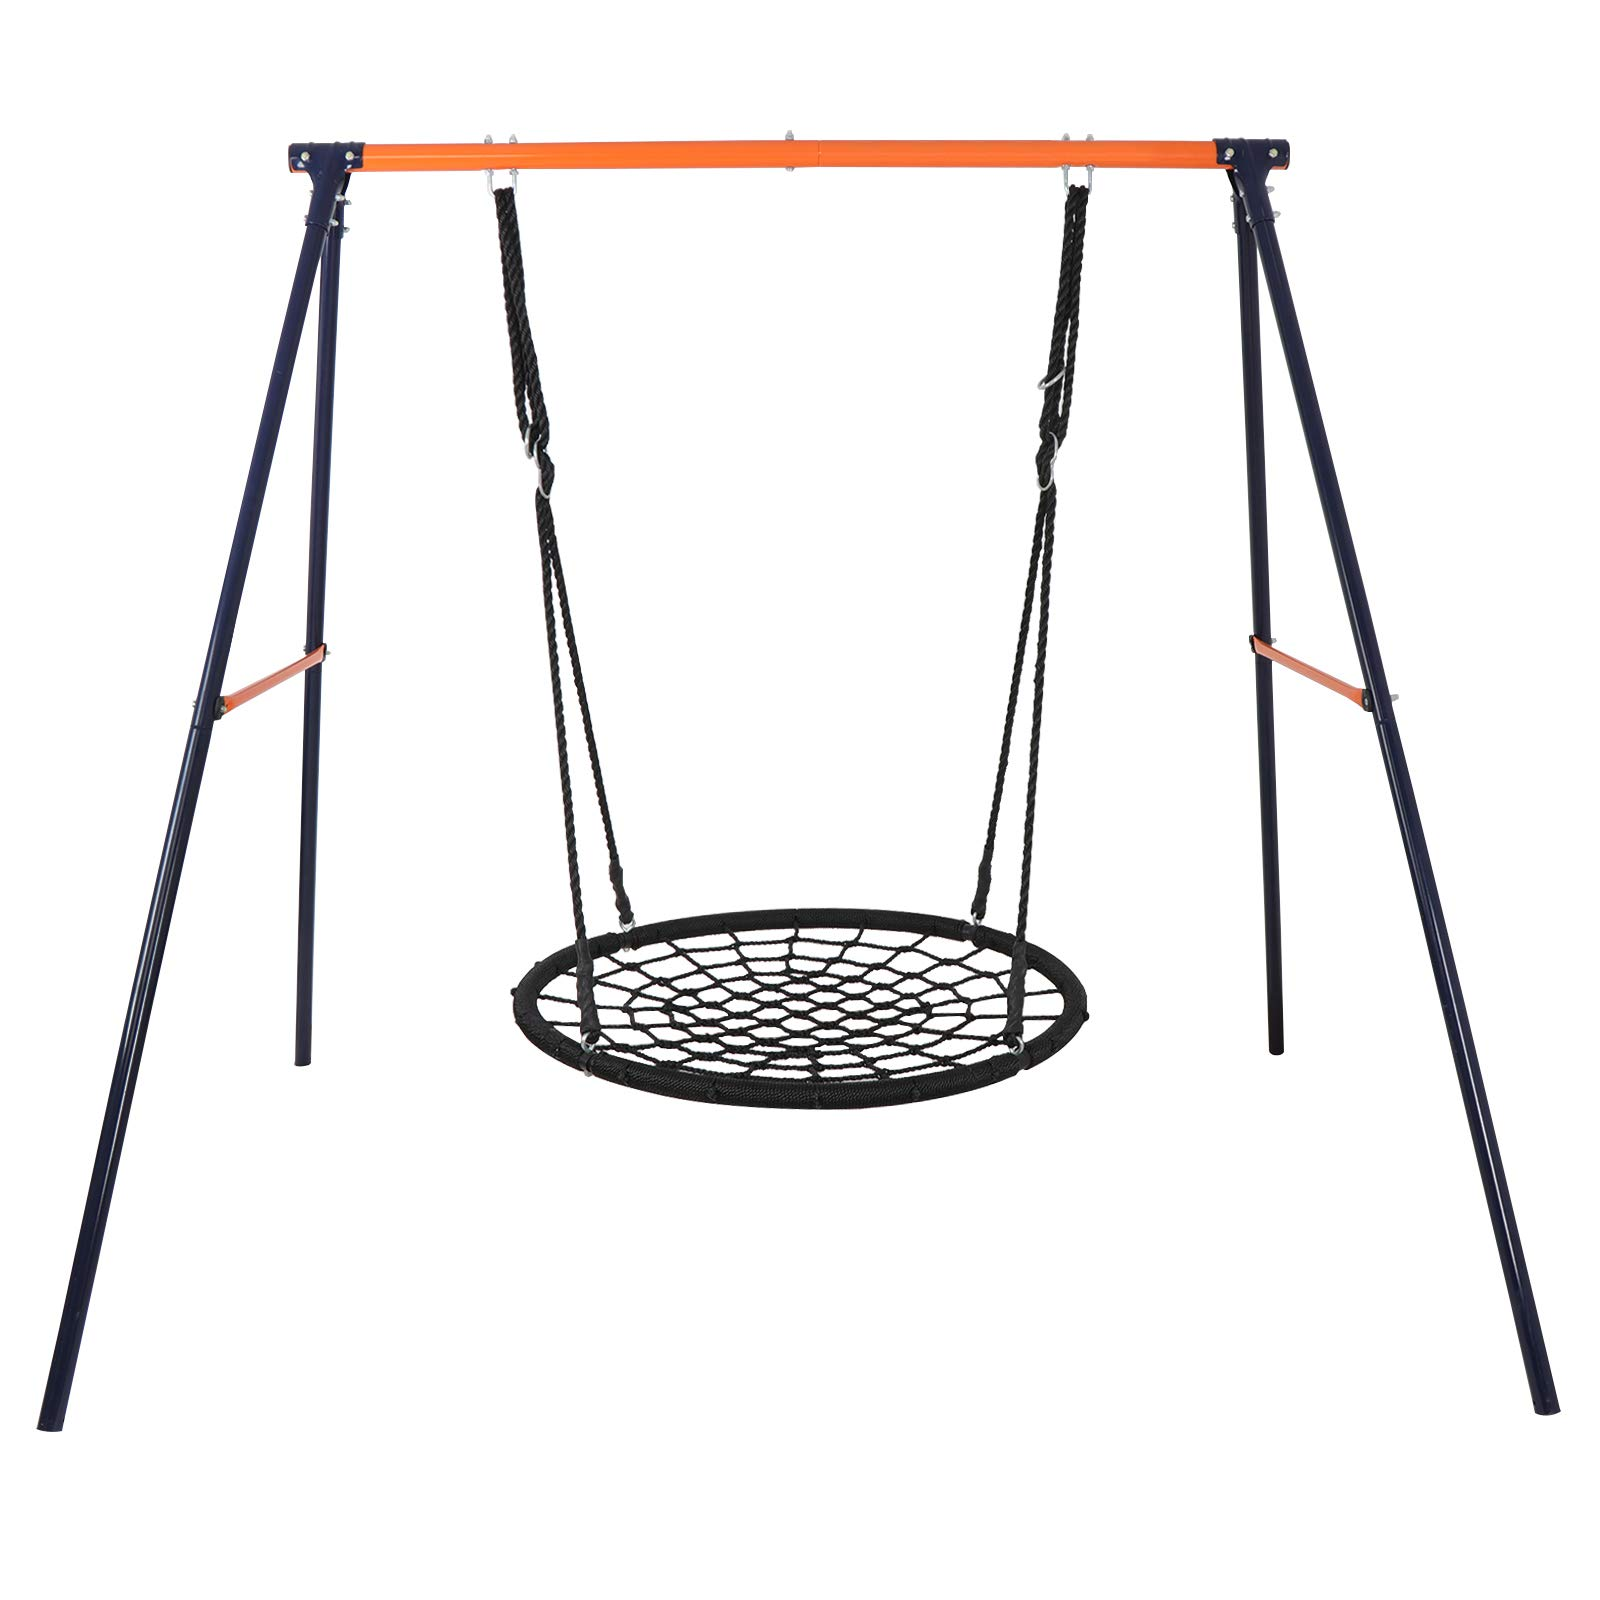 ZENY Swing Set - 24'' Spinner Web Tree Swing Nylon Rope + All Weather Steel A Swing Frame Stand,Great for Backyard Kids Play Fun by ZENY (Image #4)